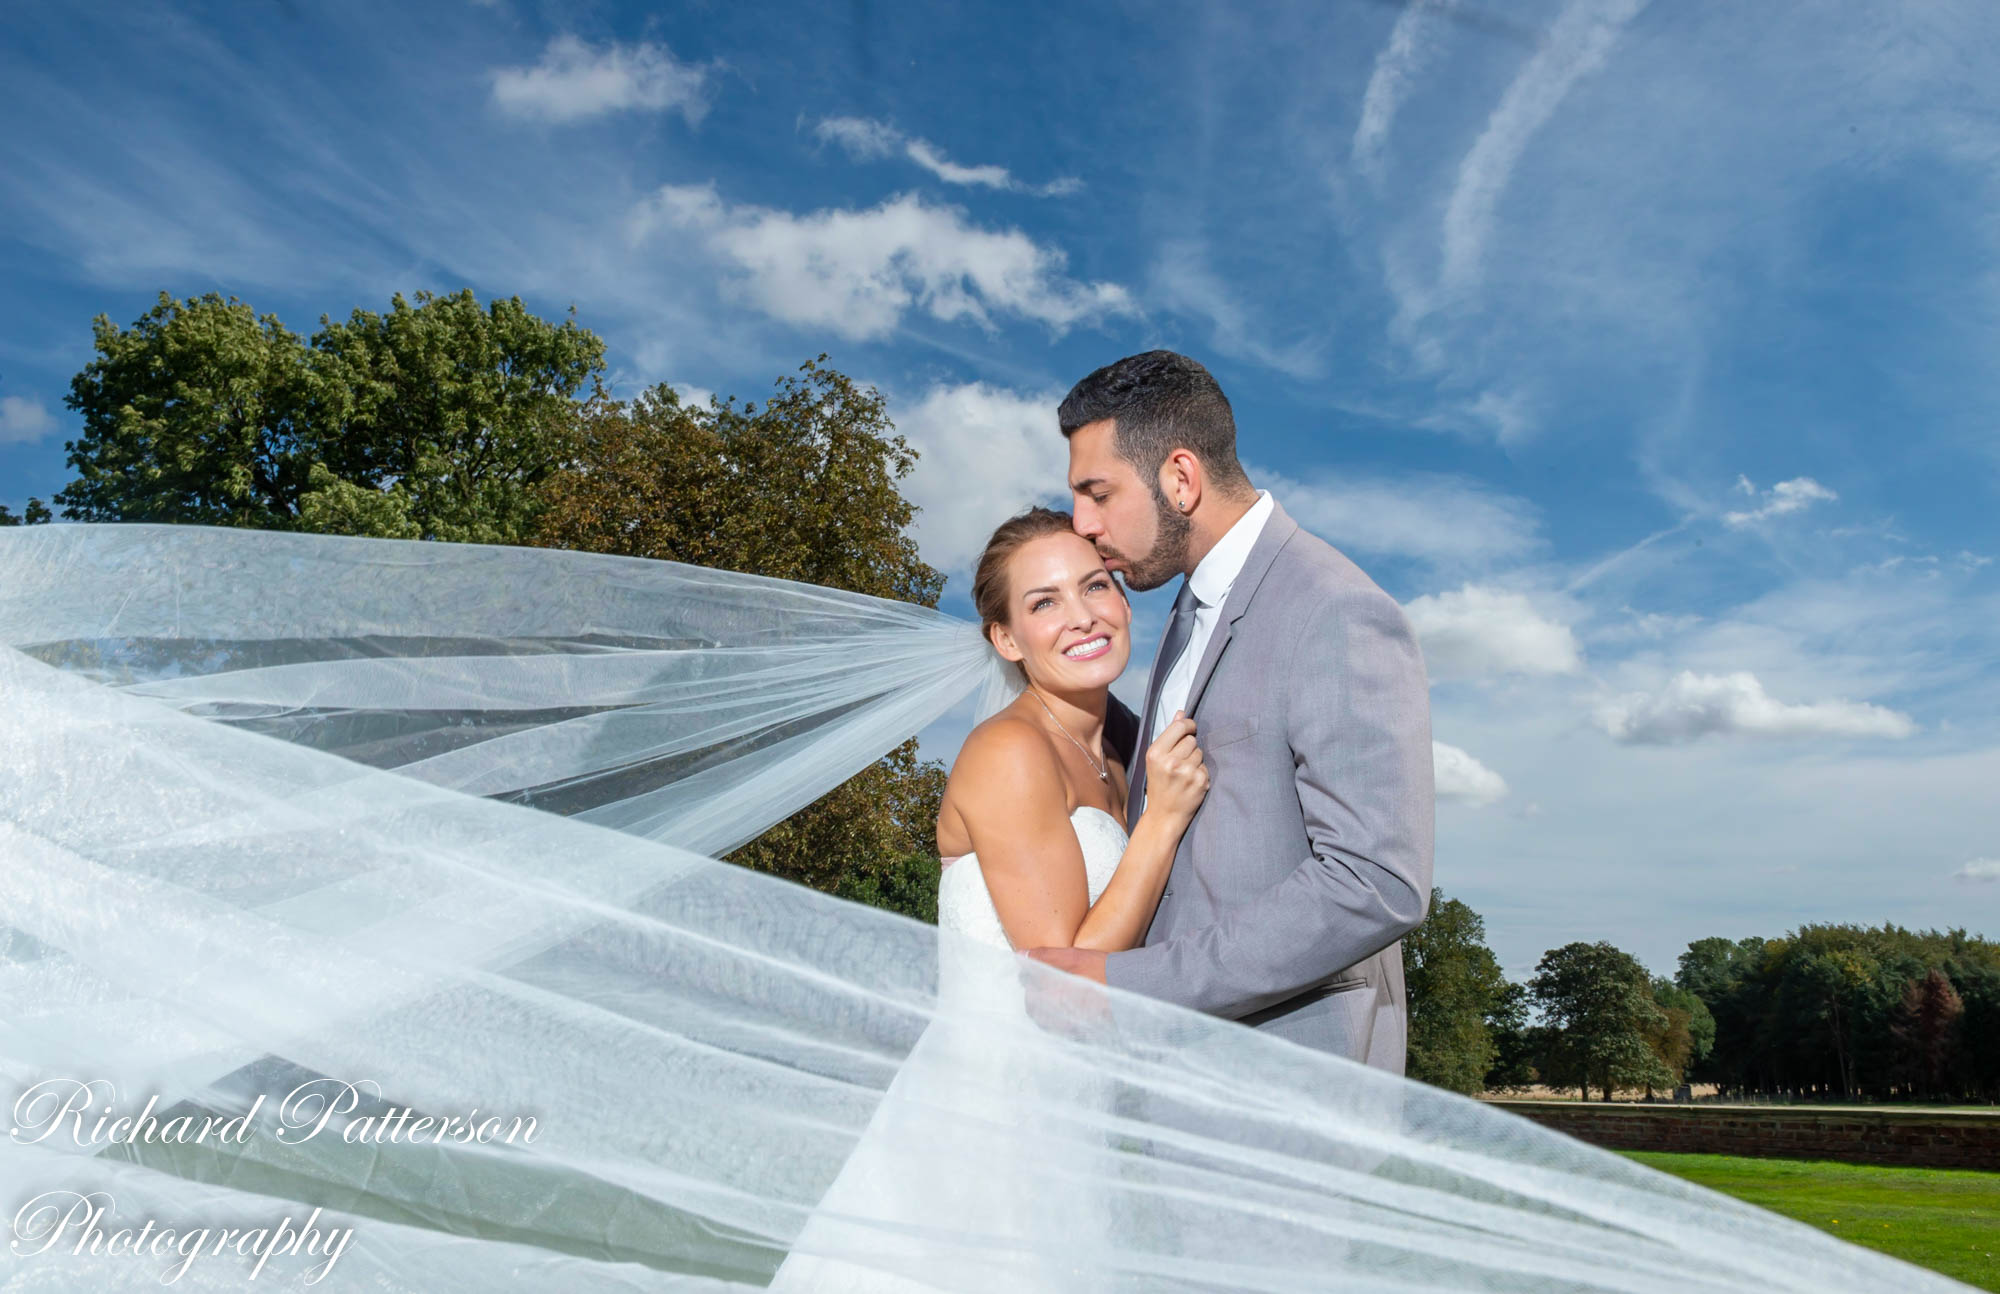 Wedding Photography, Essex Wedding Photographer, Essex Wedding Photography